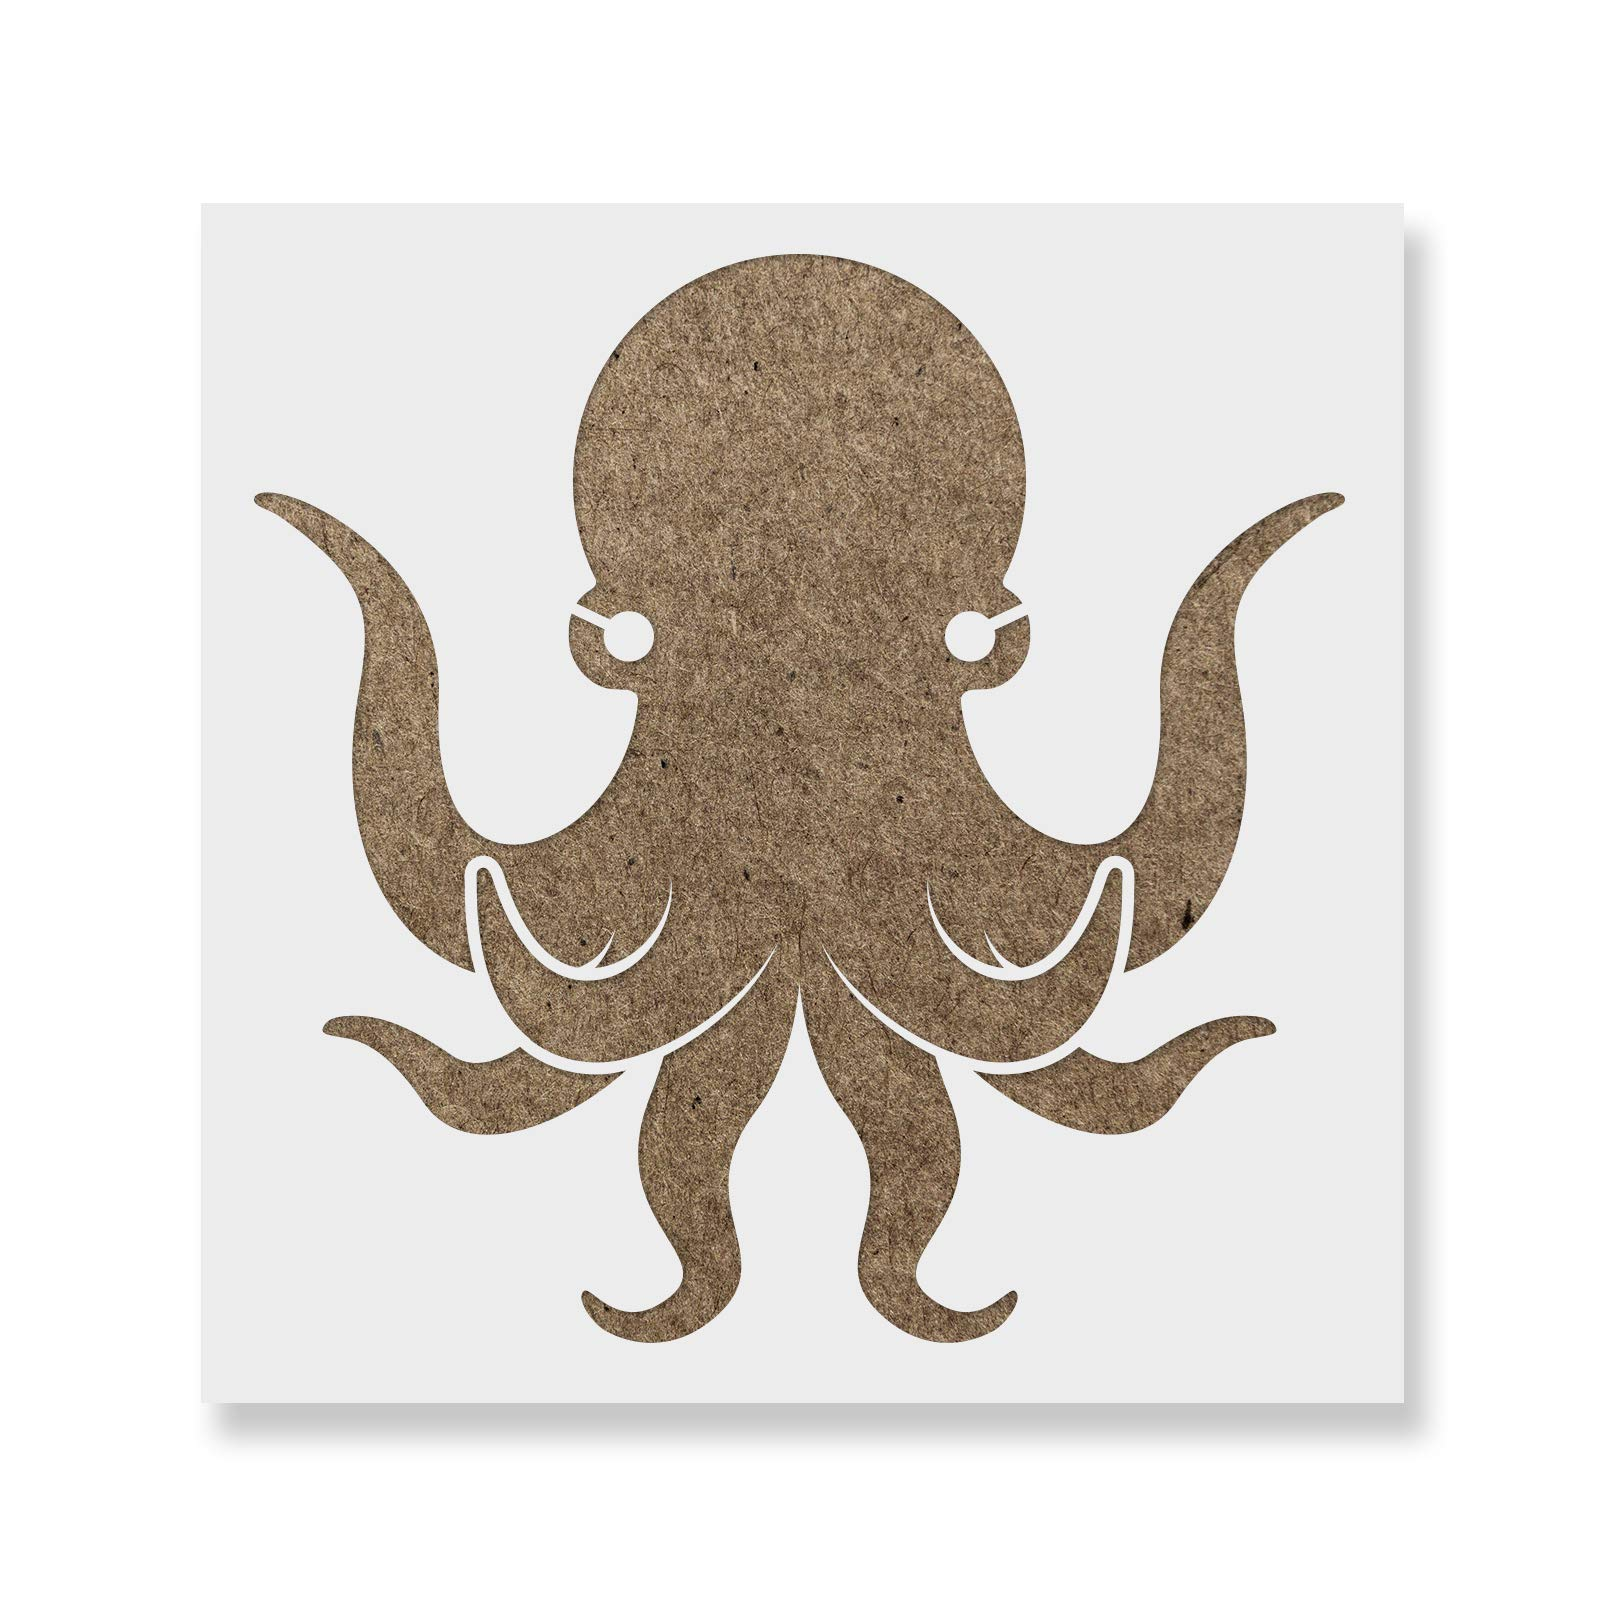 Octopus Stencil Template - Reusable Stencil with Multiple Sizes Available